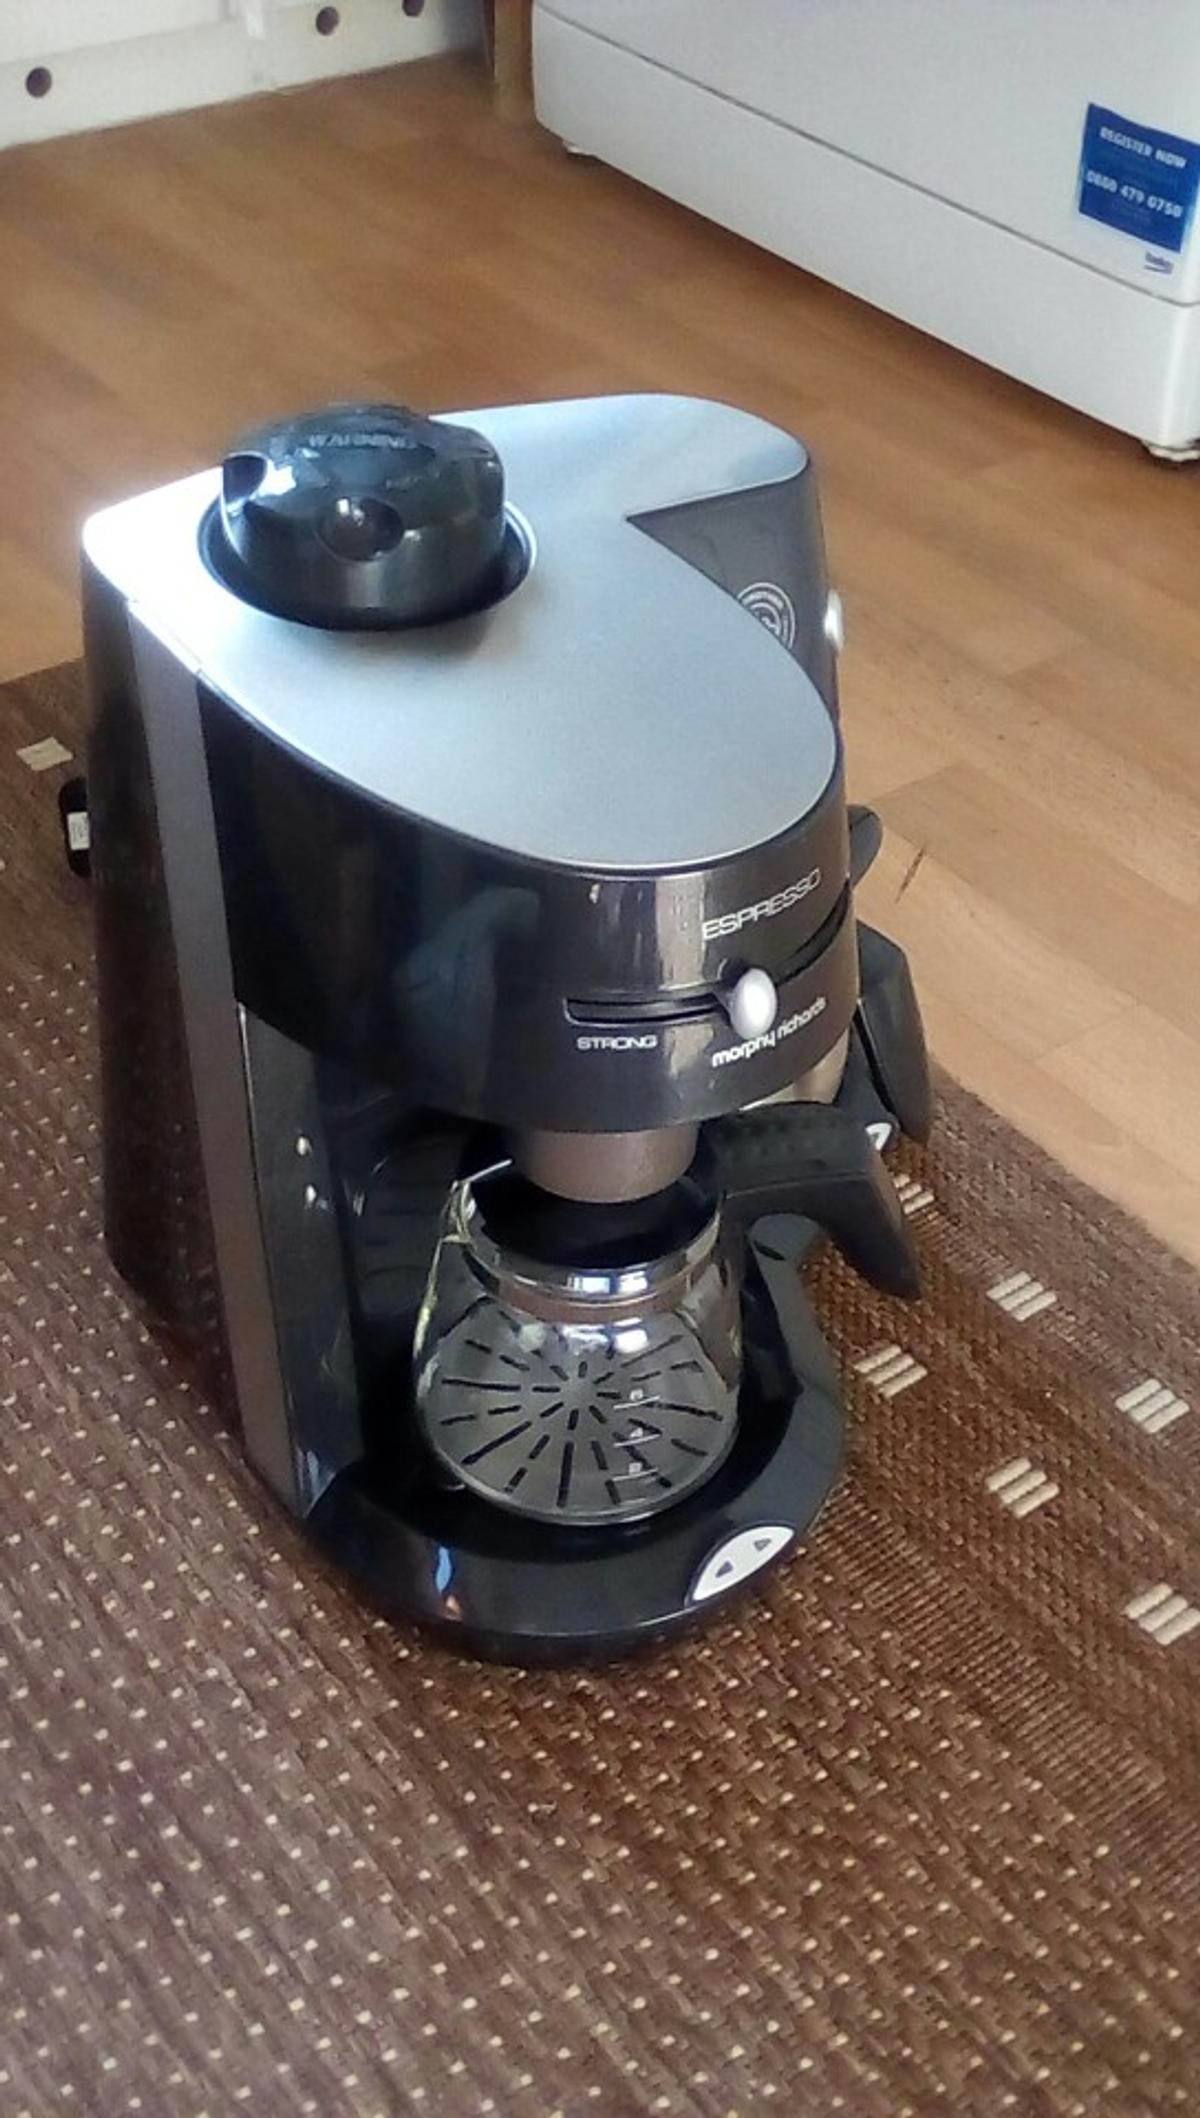 Morphy Richards Espresso Coffee Maker In Tn34 Hastings For